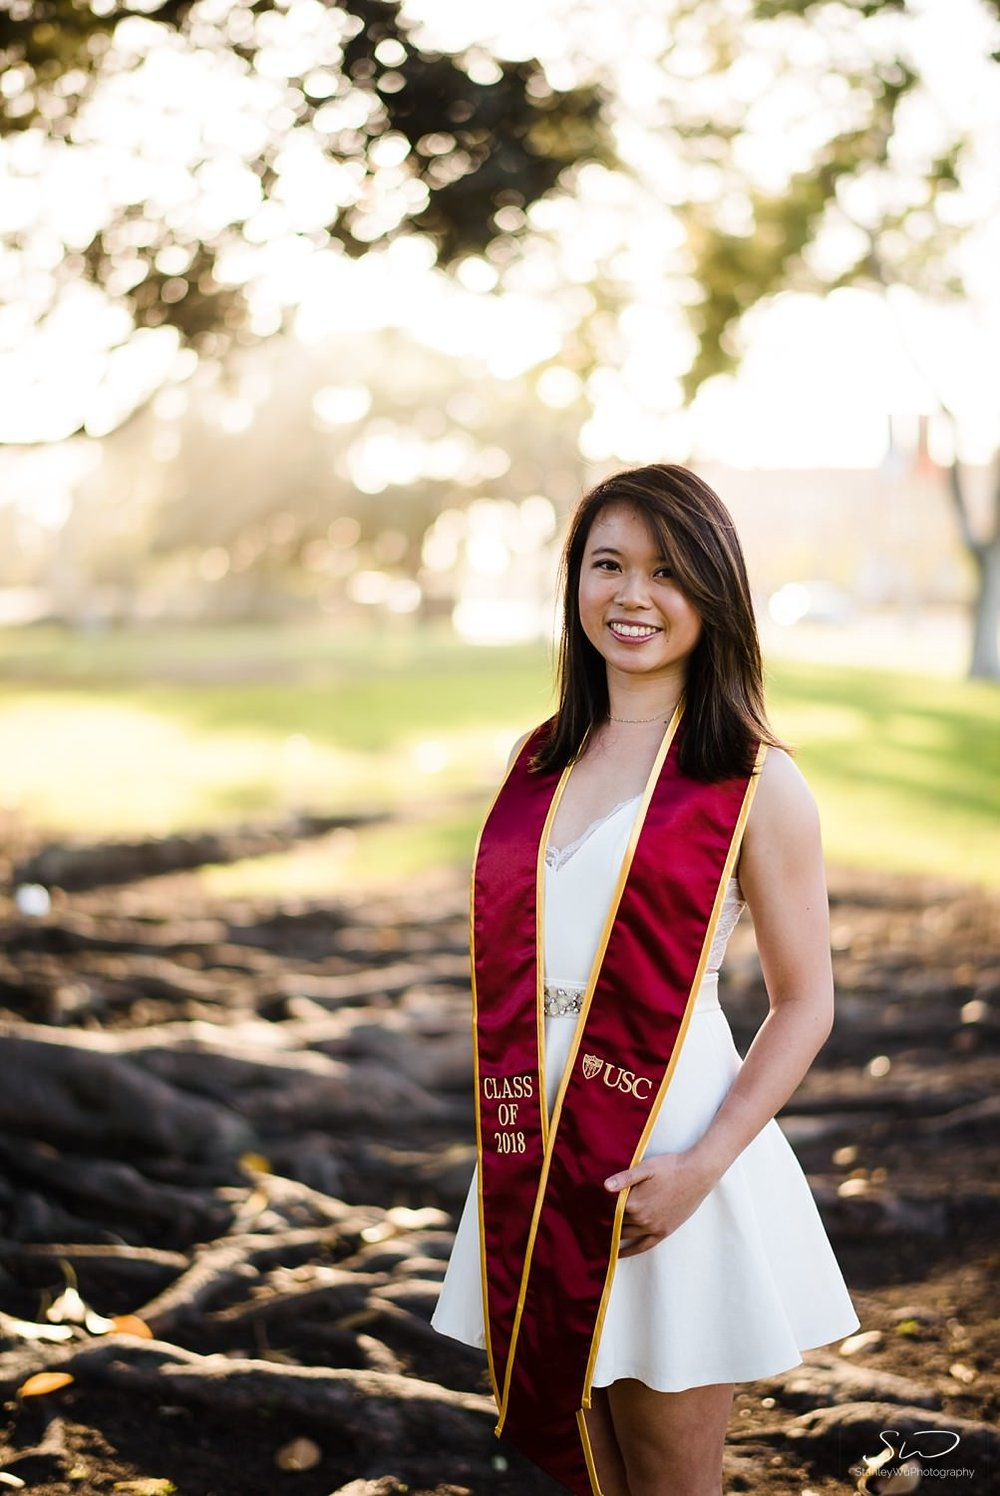 Portrait of USC senior wearing graduation stole | Los Angeles Graduation and Senior Portrait Photographer